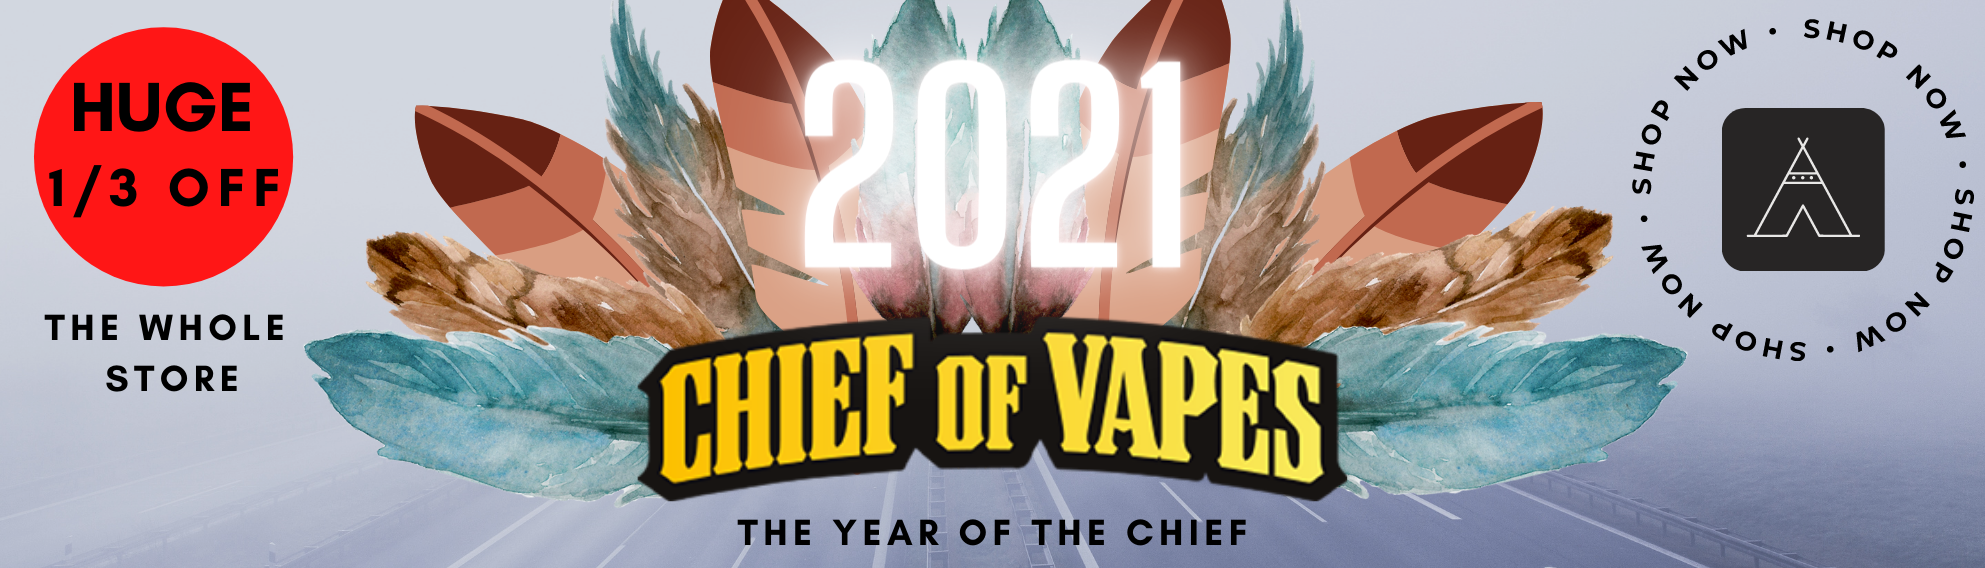 Chief of Vapes 2021 (1)